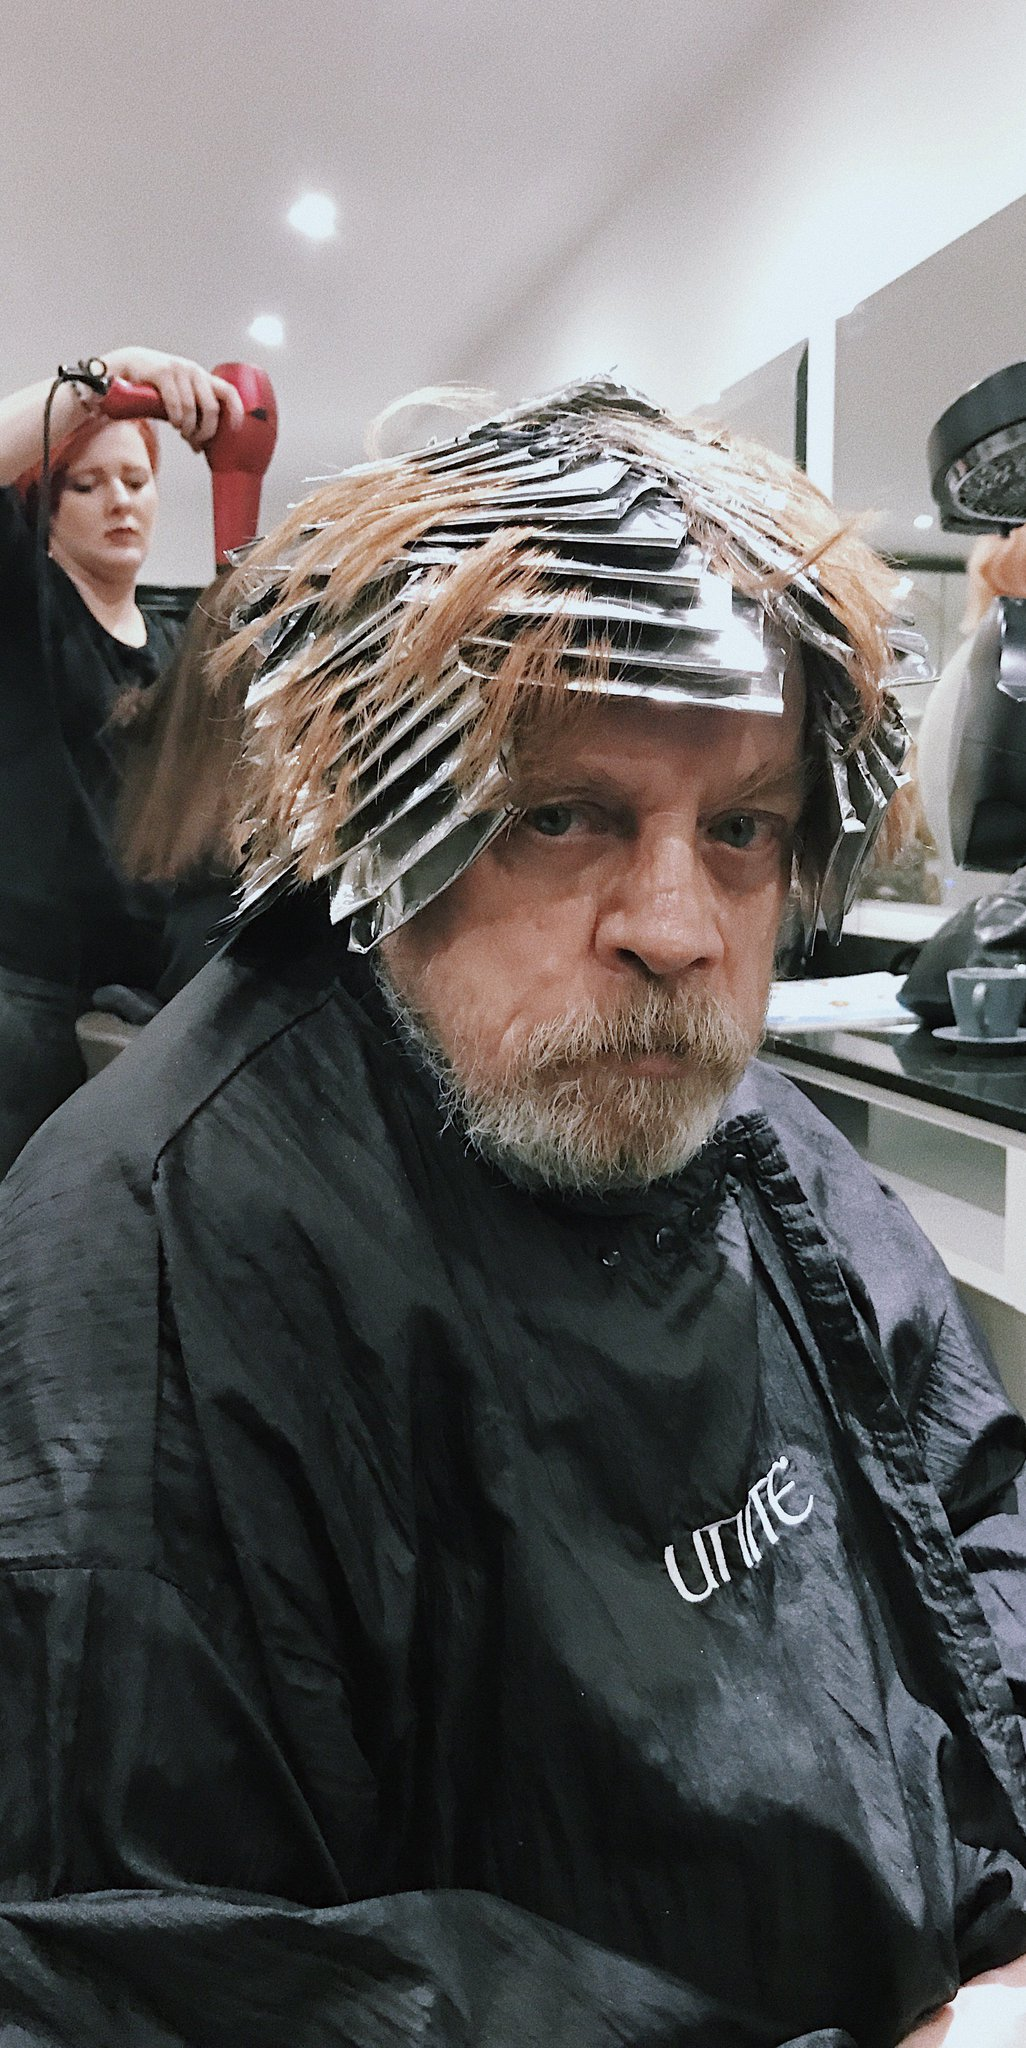 Mark Hamill On Twitter Quot Road To Recovery From The Perils